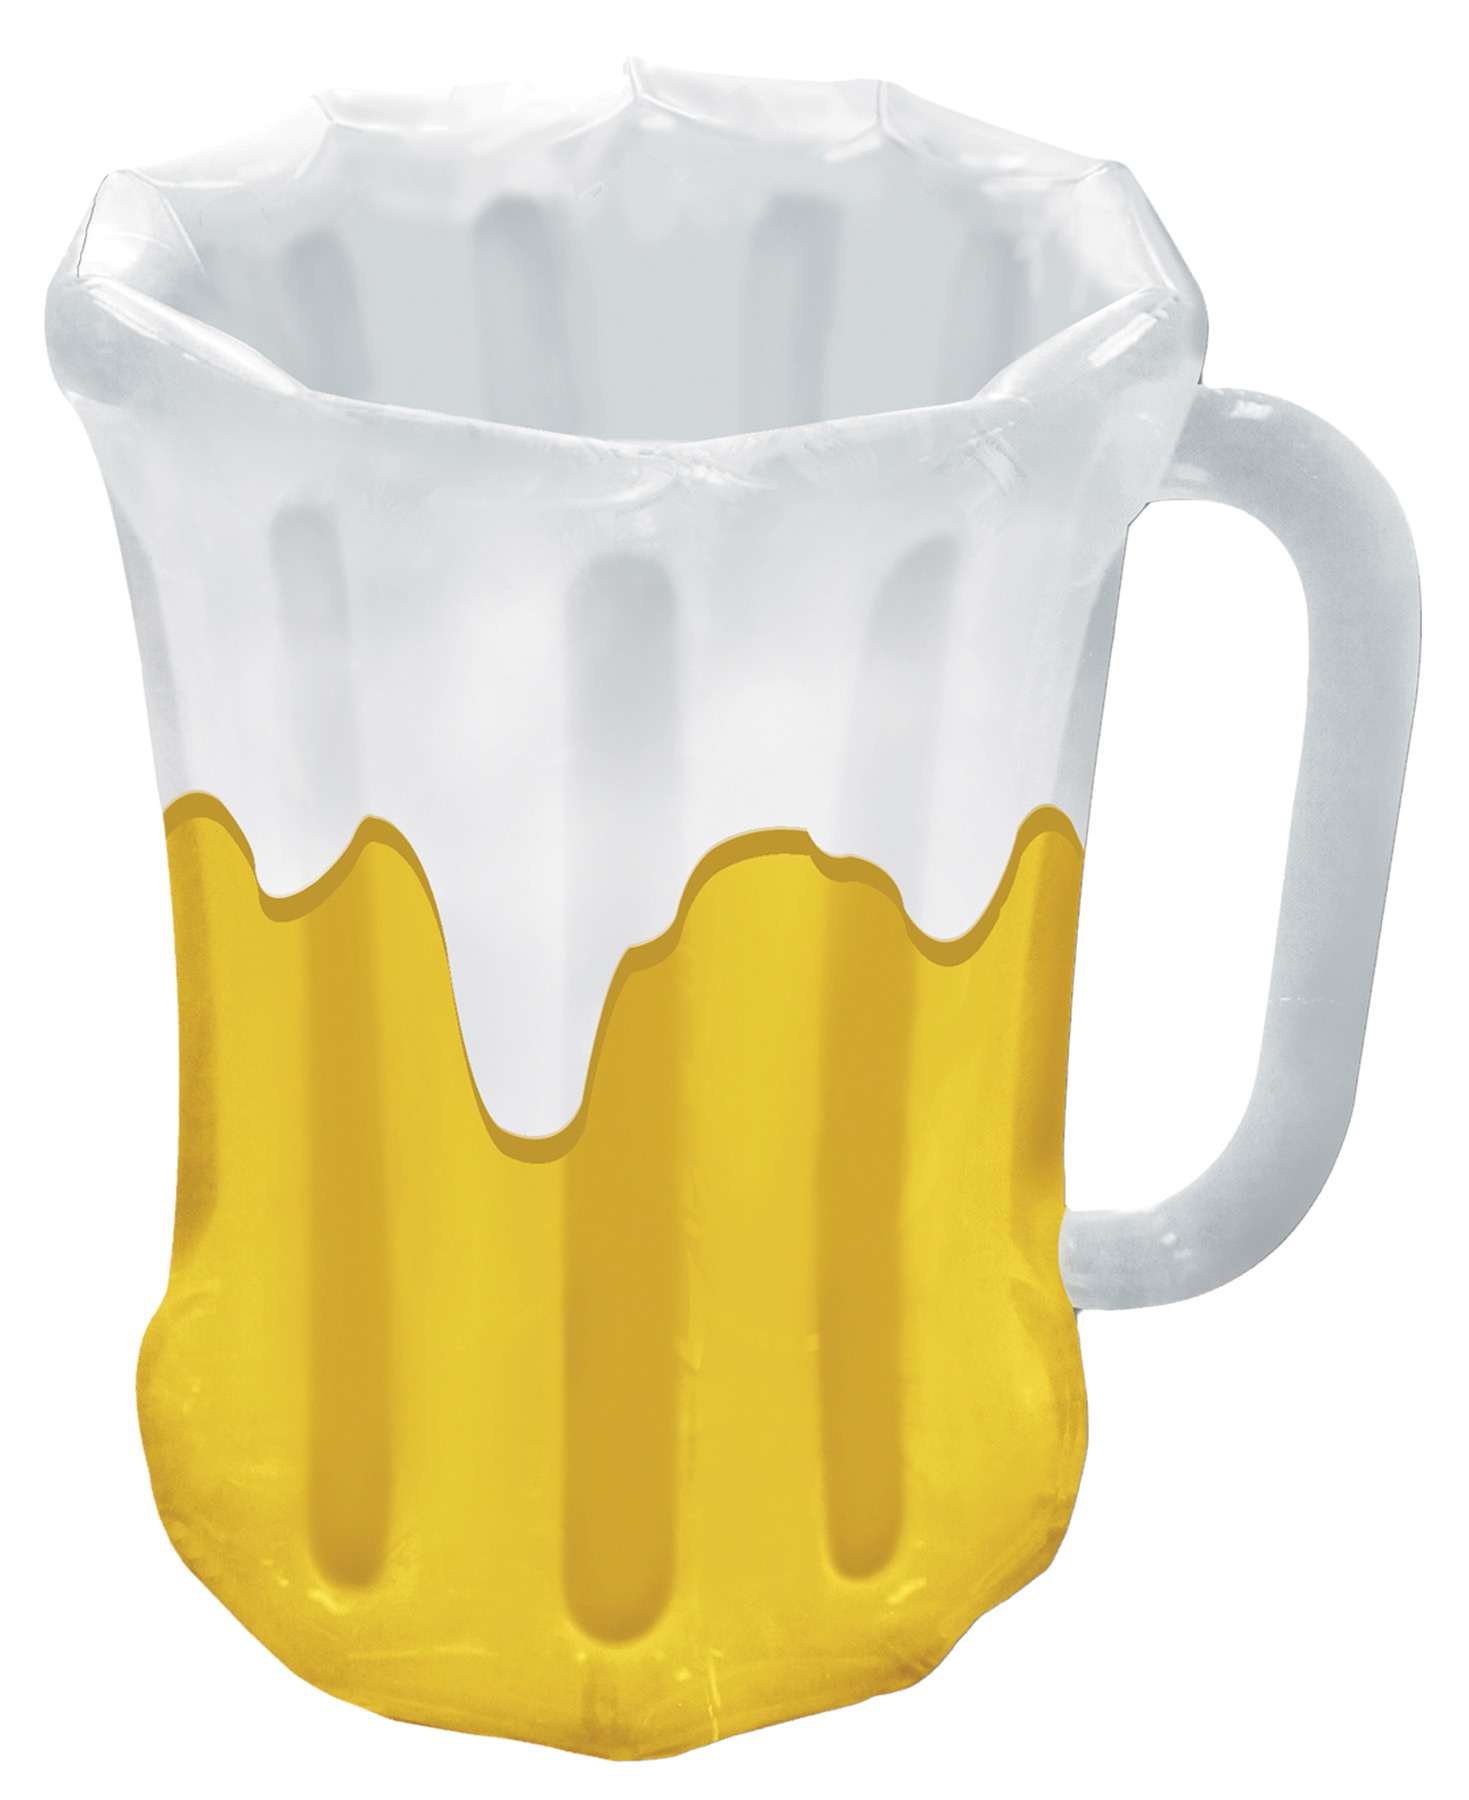 Featured Image for Inflatable Beer Mug Cooler